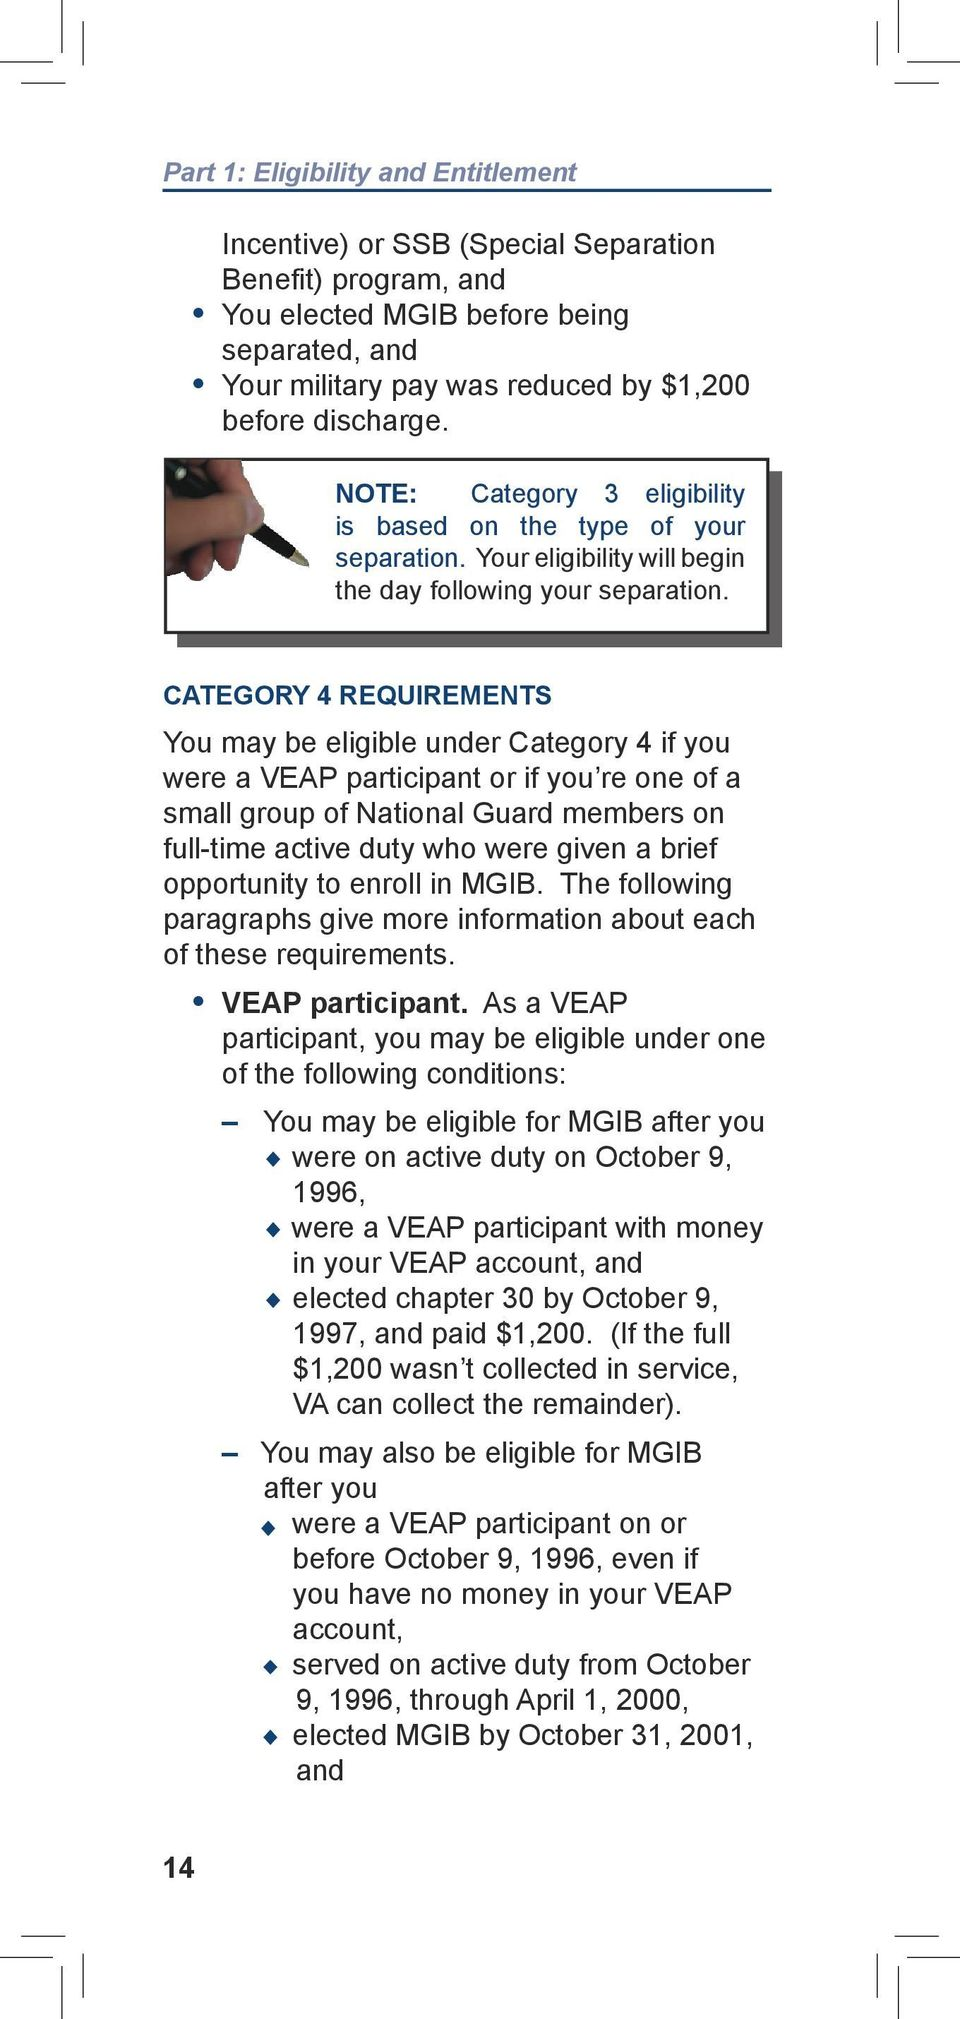 CATEGORY 4 REQUIREMENTS You may be eligible under Category 4 if you were a VEAP participant or if you re one of a small group of National Guard members on full-time active duty who were given a brief